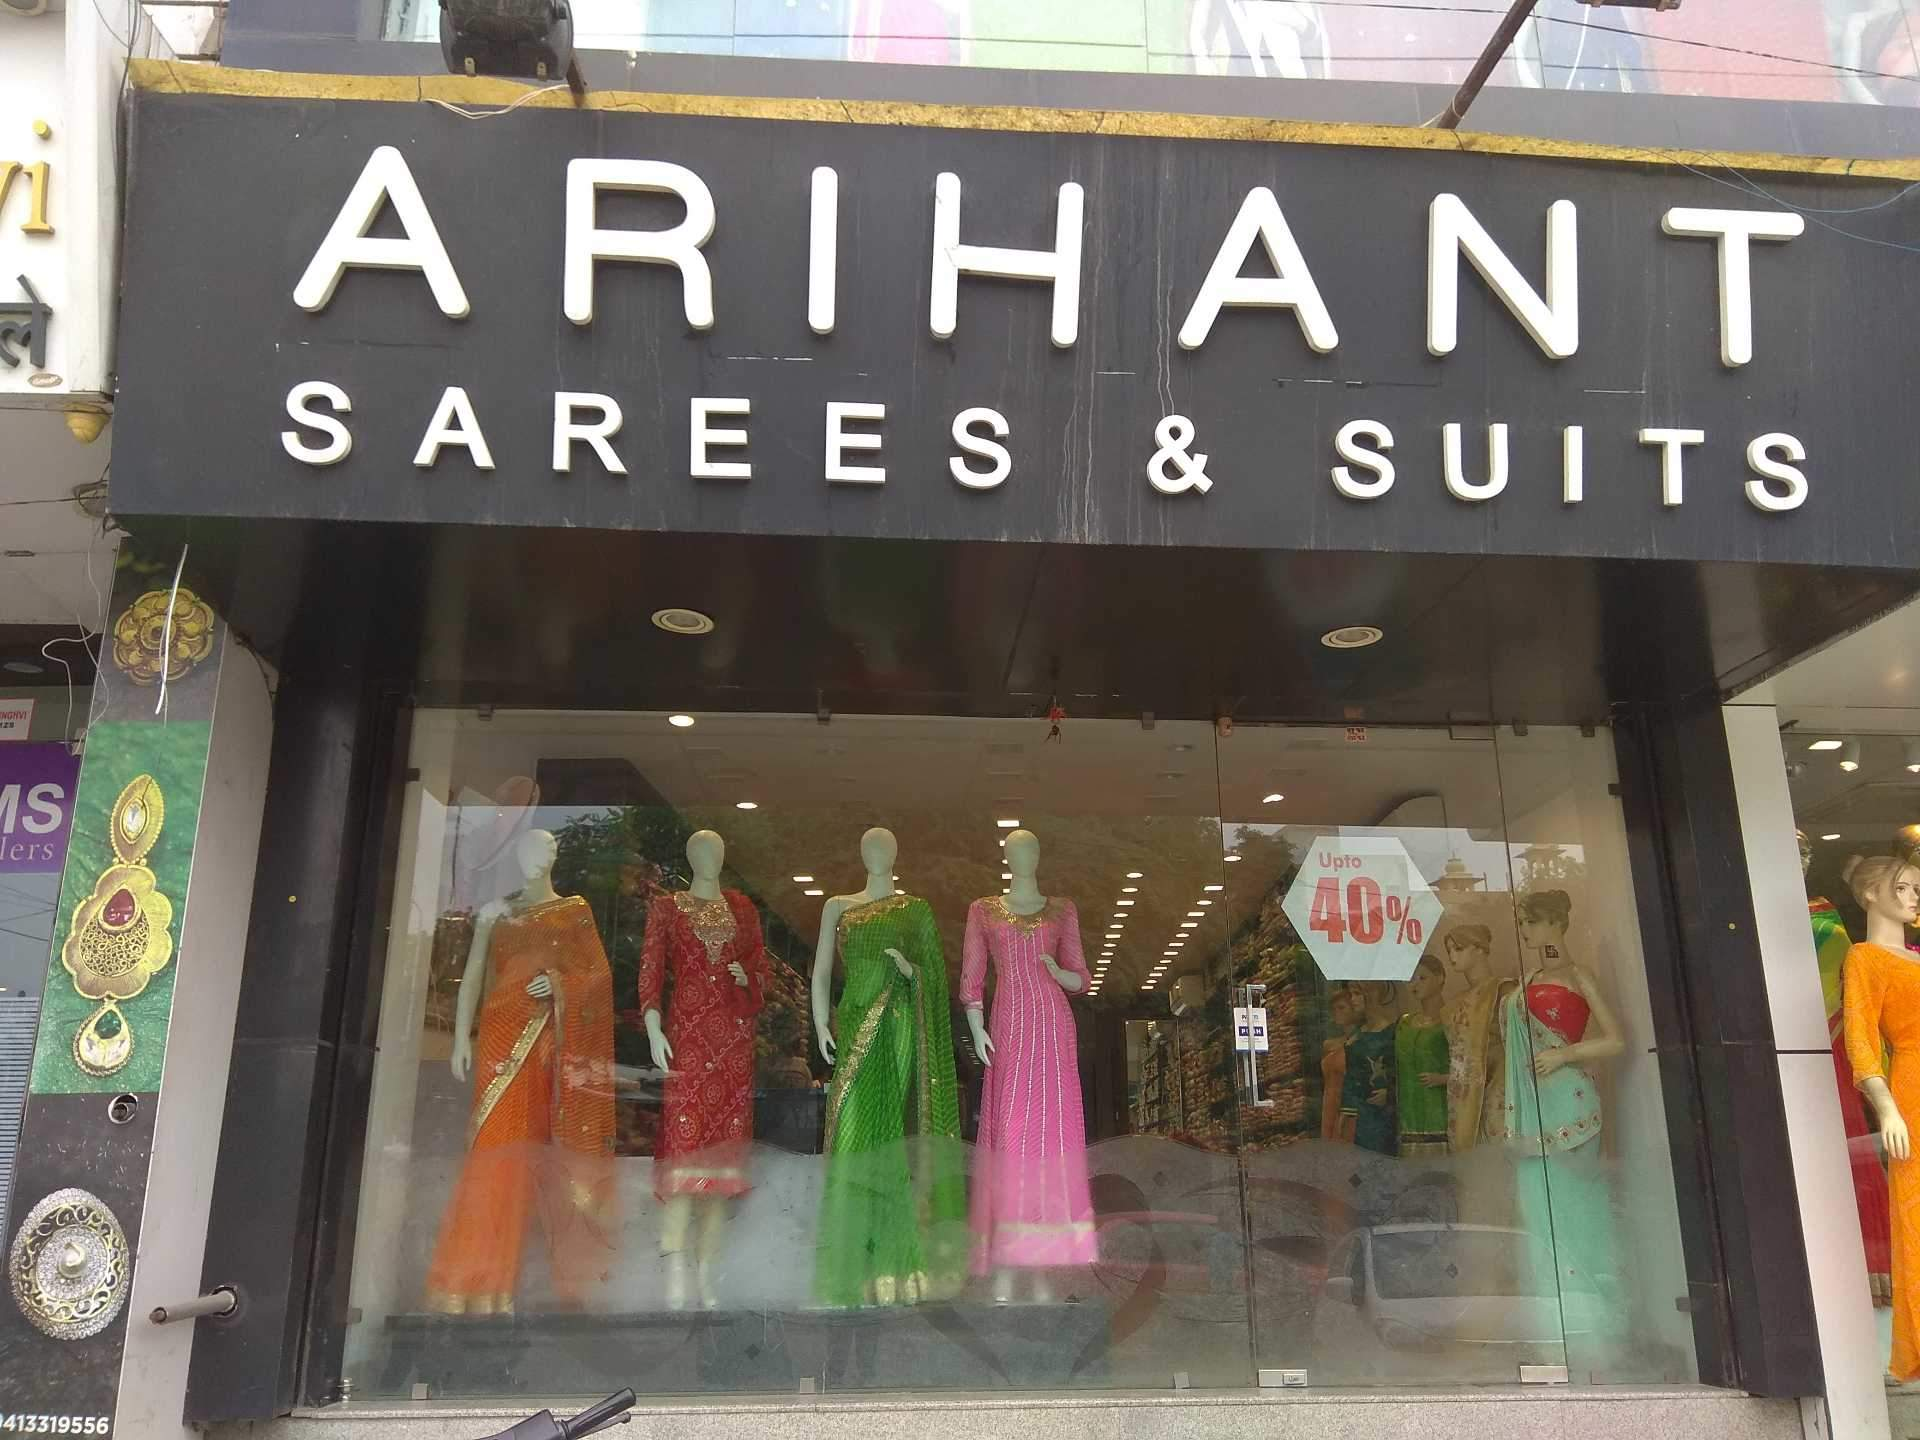 Best Boutique in Udaipur – Best Women's & Mens's Clothing Stores in Udaipur City